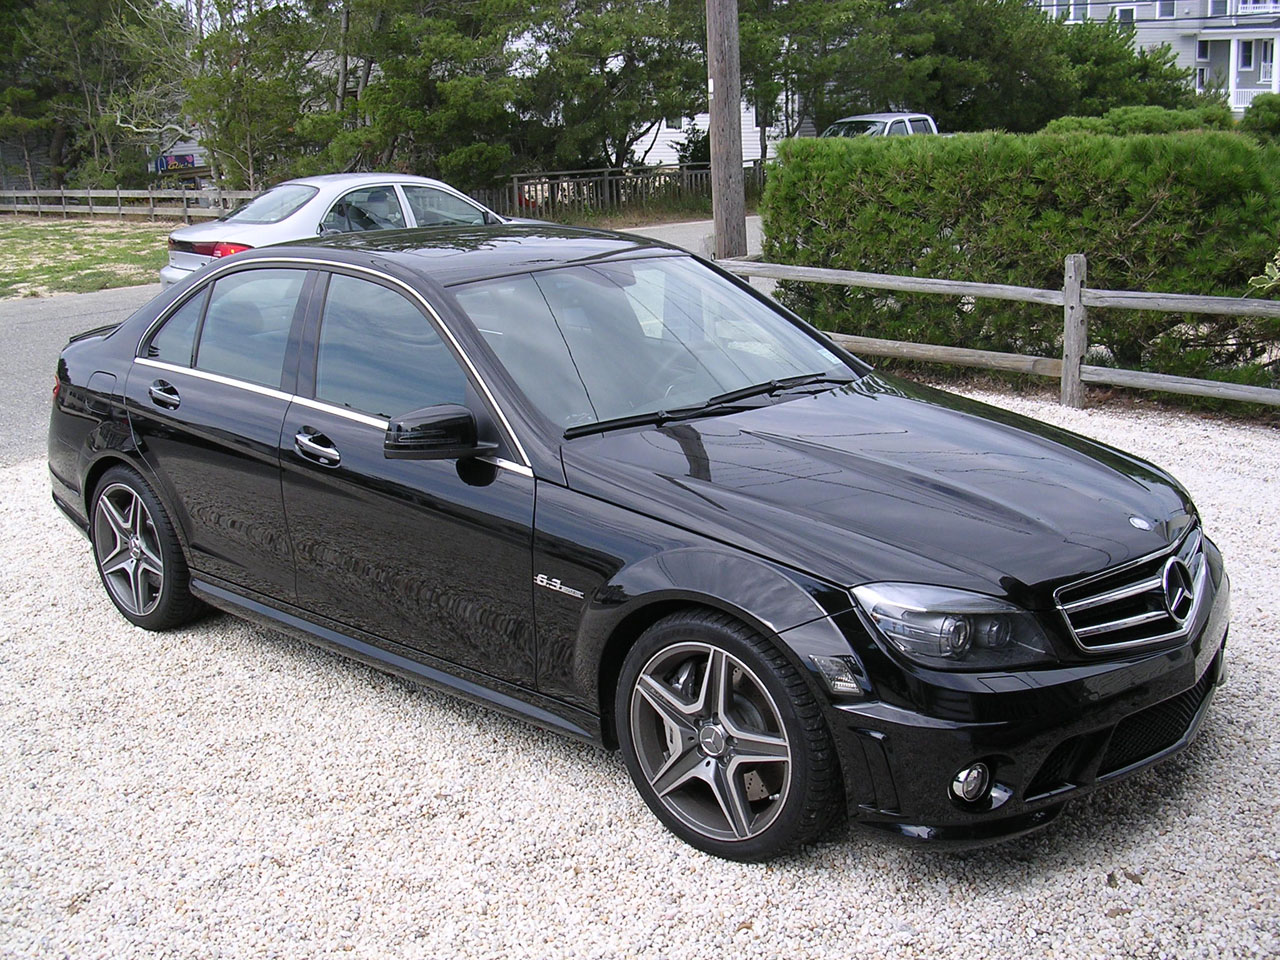 2010 mercedes benz c63 amg eurocharged 1 4 mile trap speeds 0 60. Black Bedroom Furniture Sets. Home Design Ideas